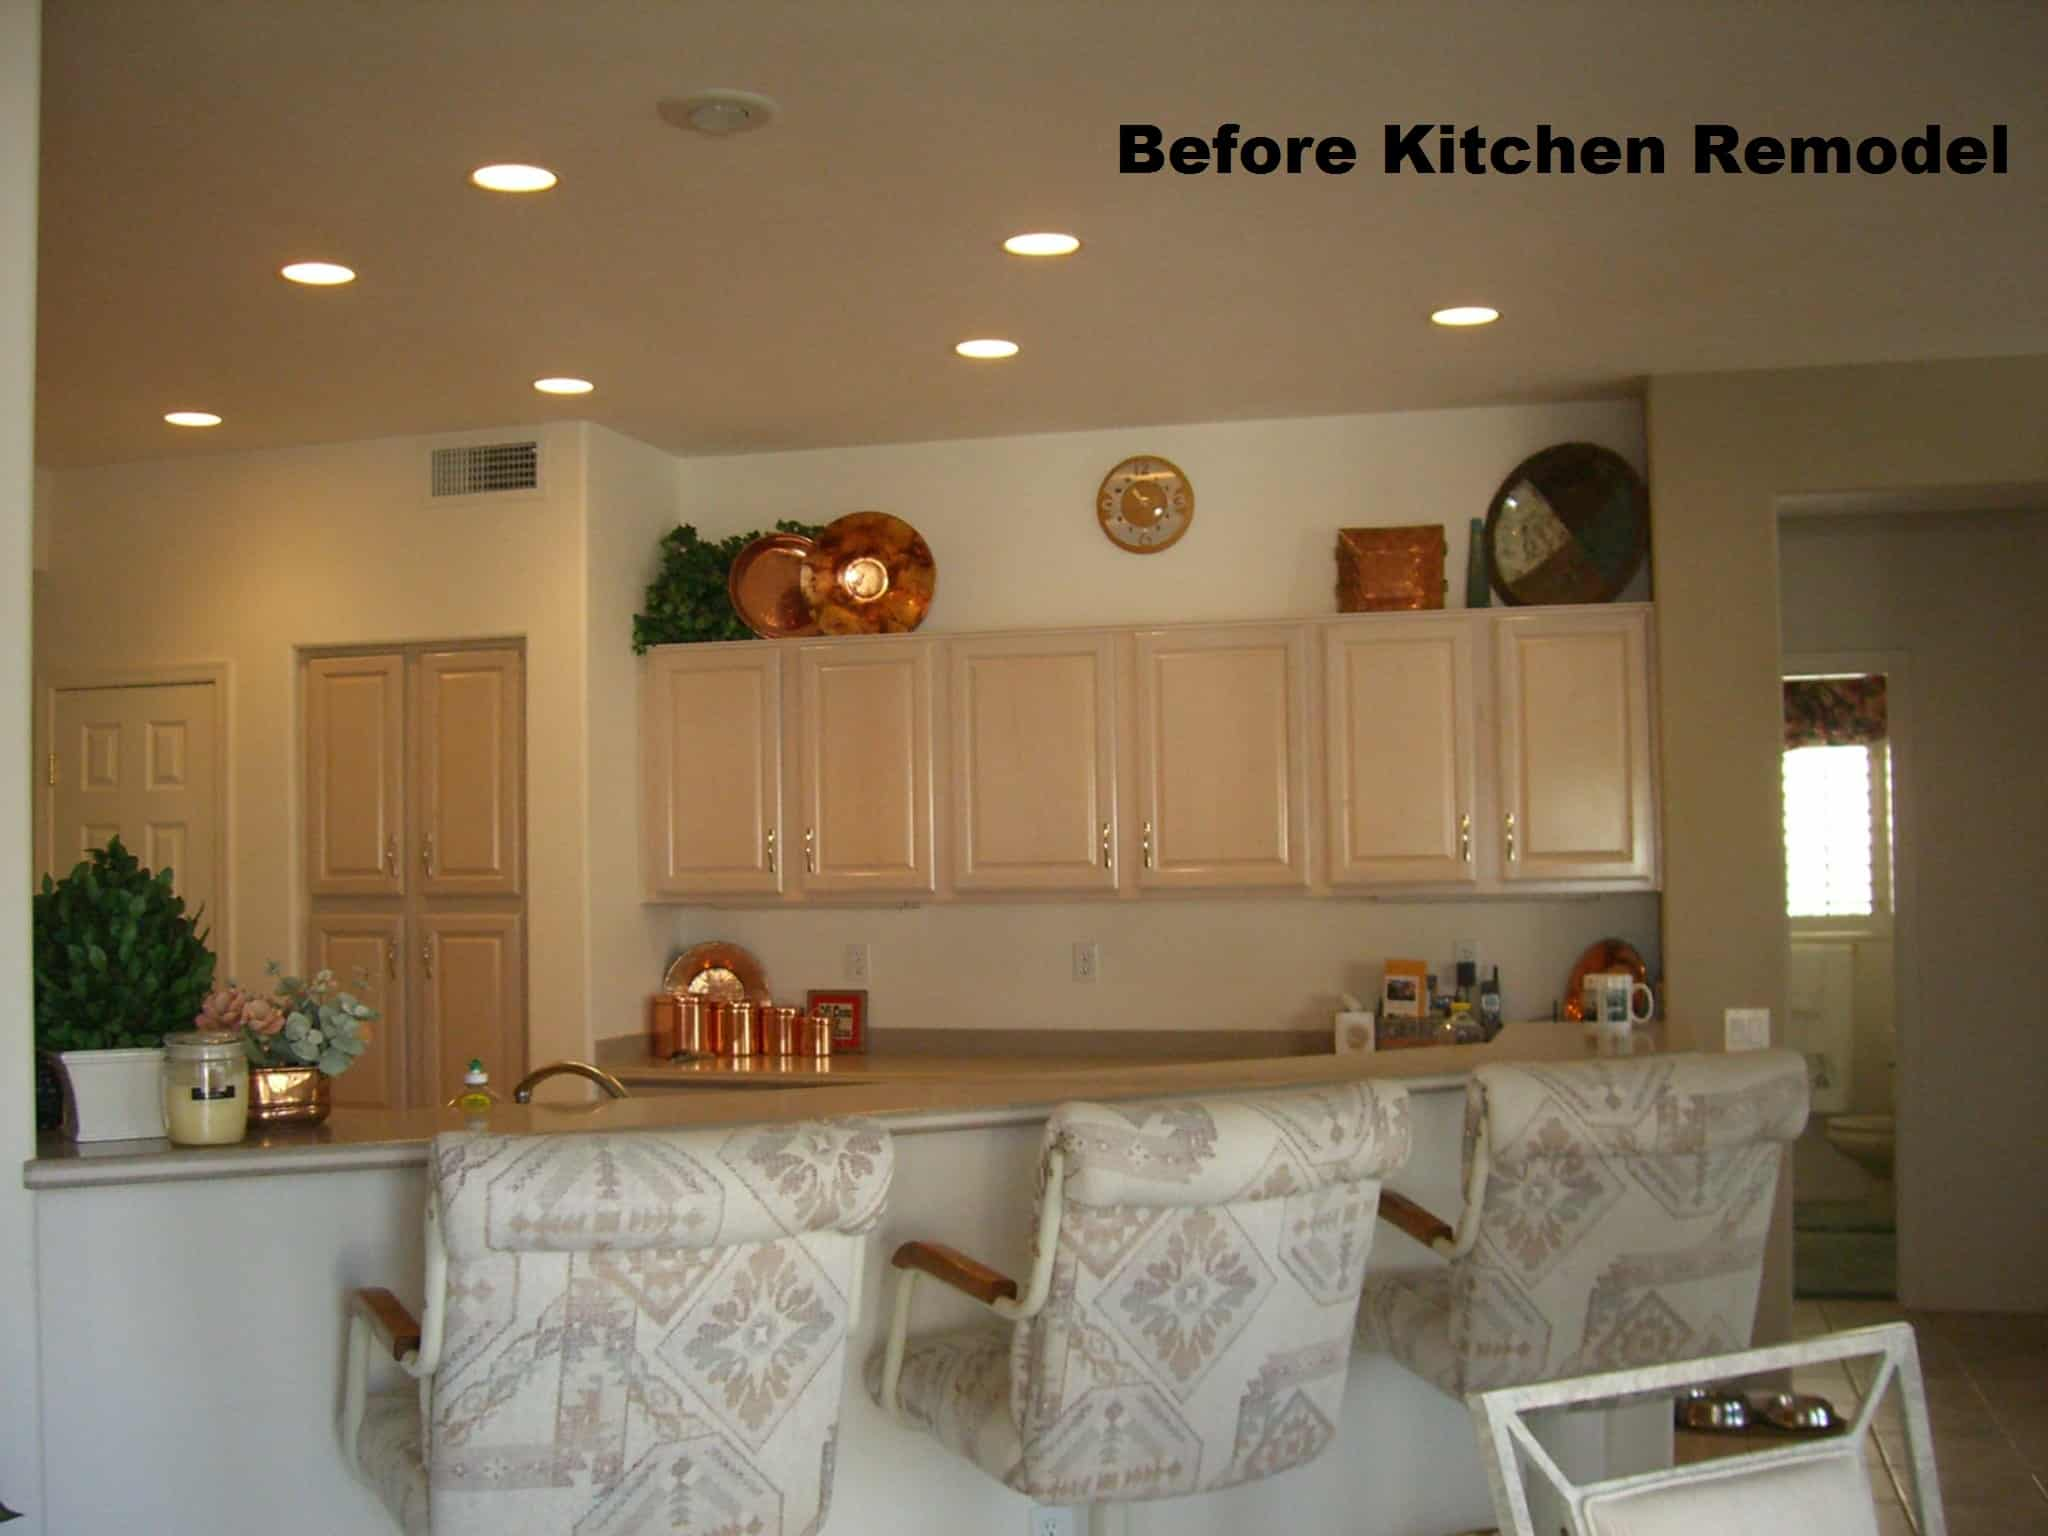 A large kitchen before remodeling